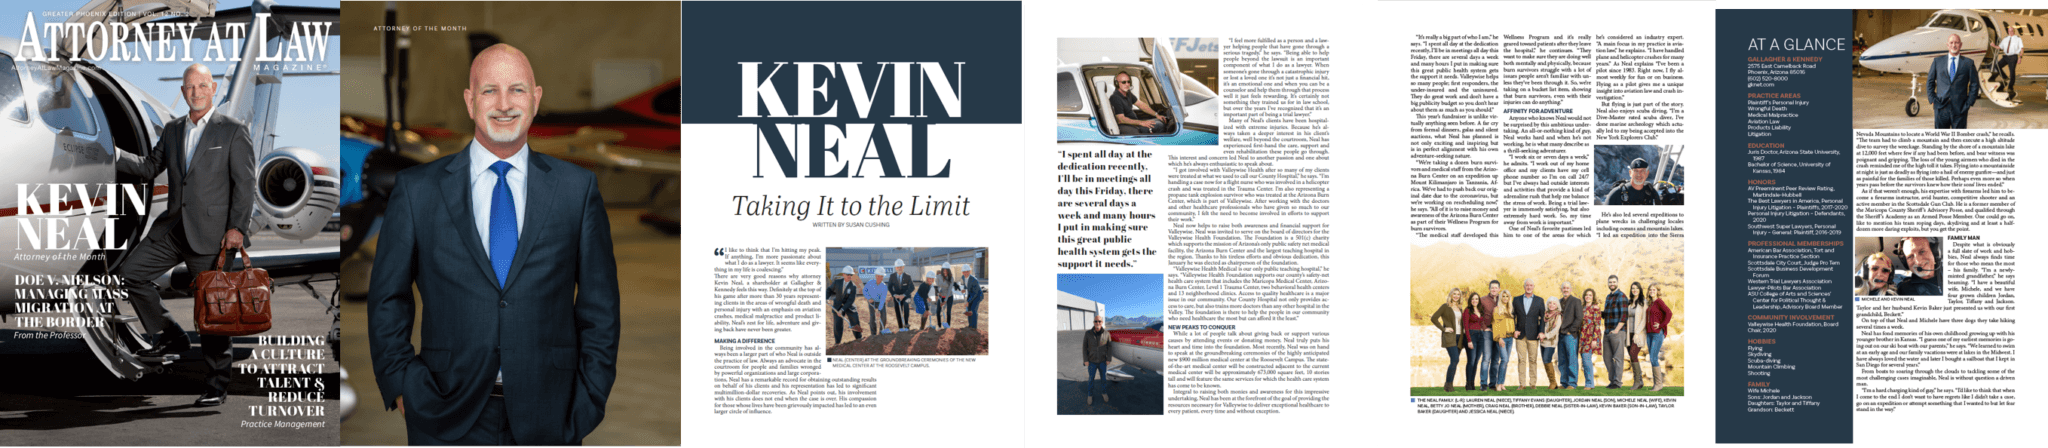 Kevin Neal feature in Attorney at Law Magazine